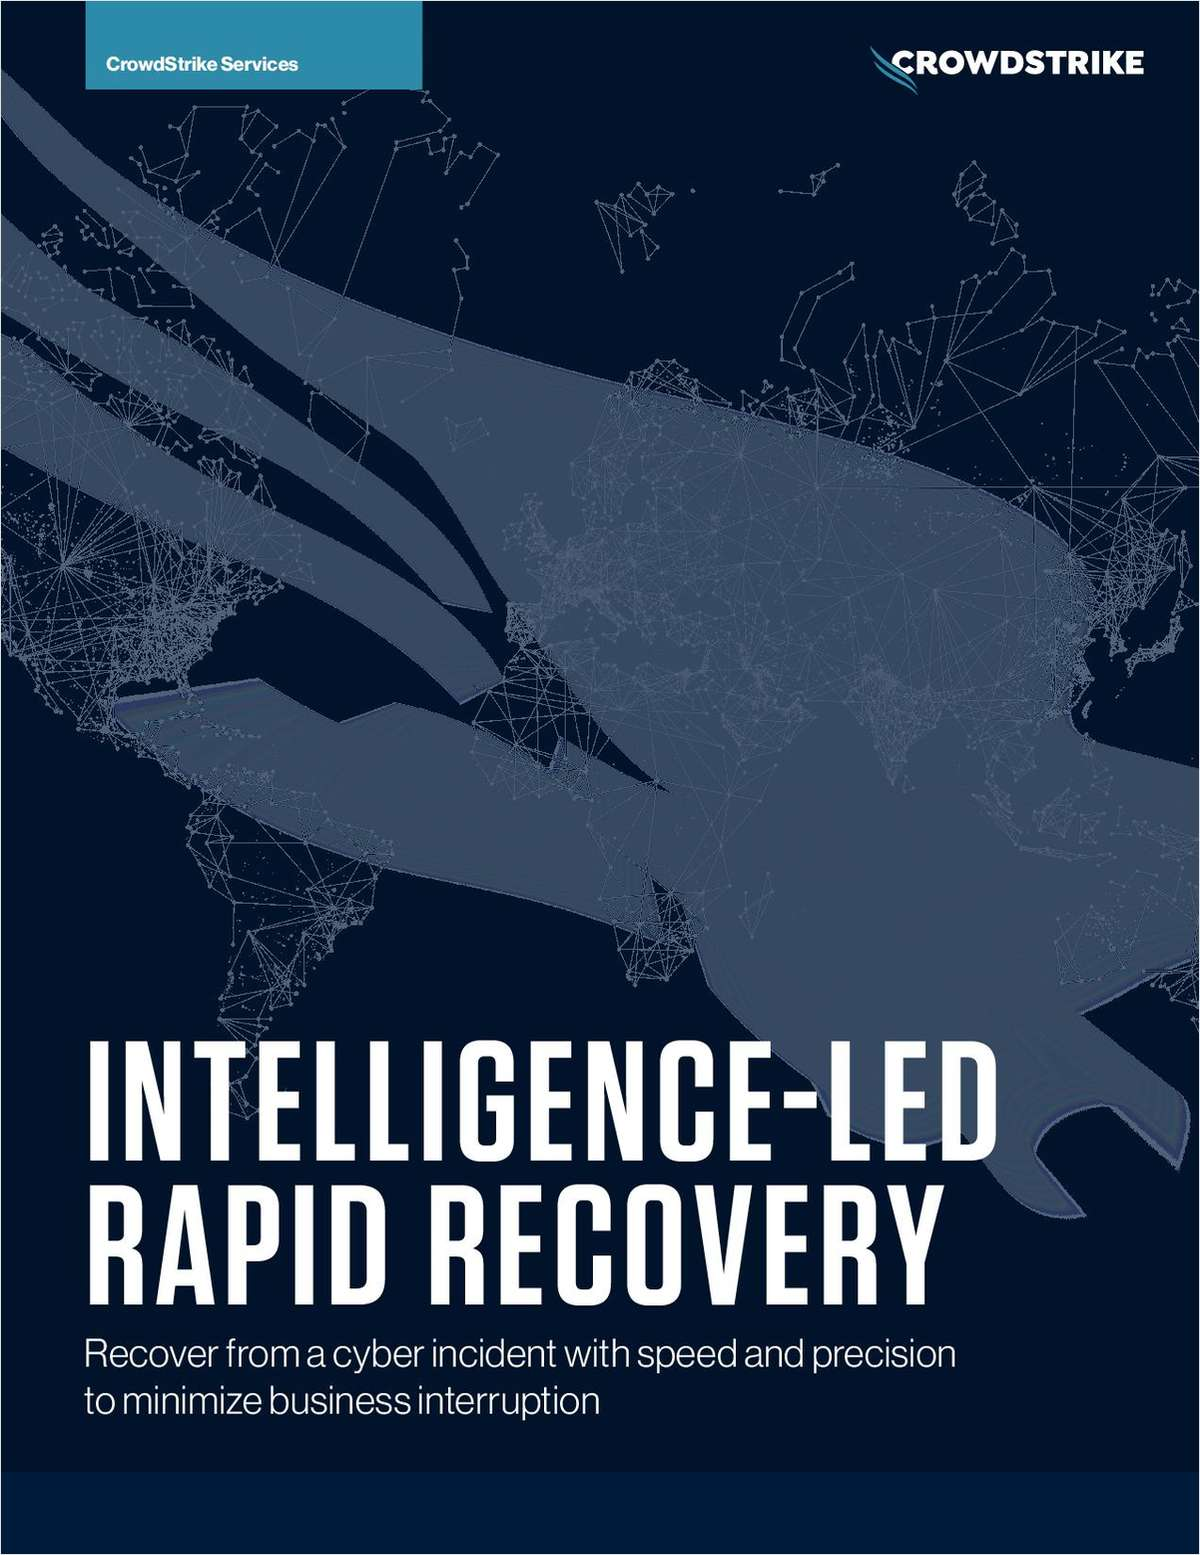 Intelligence-Led Rapid Recovery from a Cyber Incident